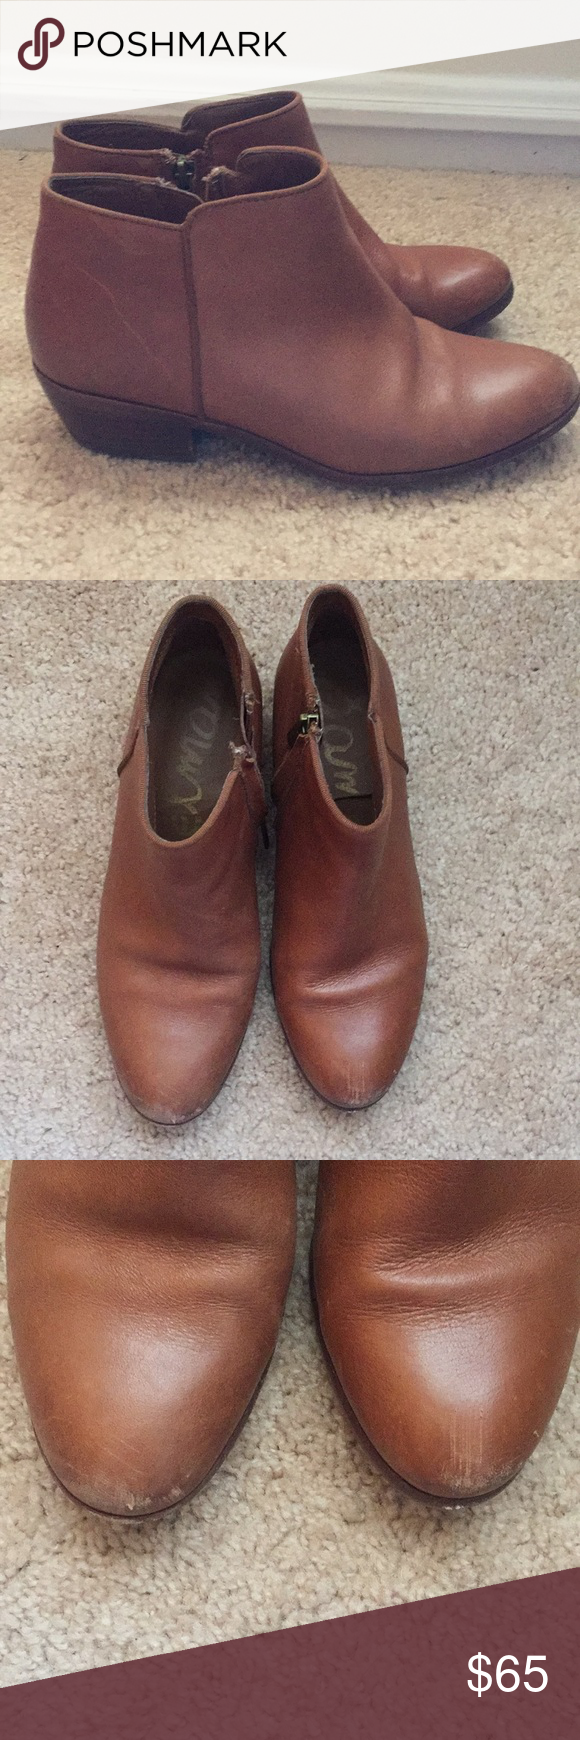 fe6016c76 Sam Edelman Petty Ankle Bootie in Cognac Leather Sam Edelman Petty Ankle  Booties in Cognac Leather. Slight scuffs on toes